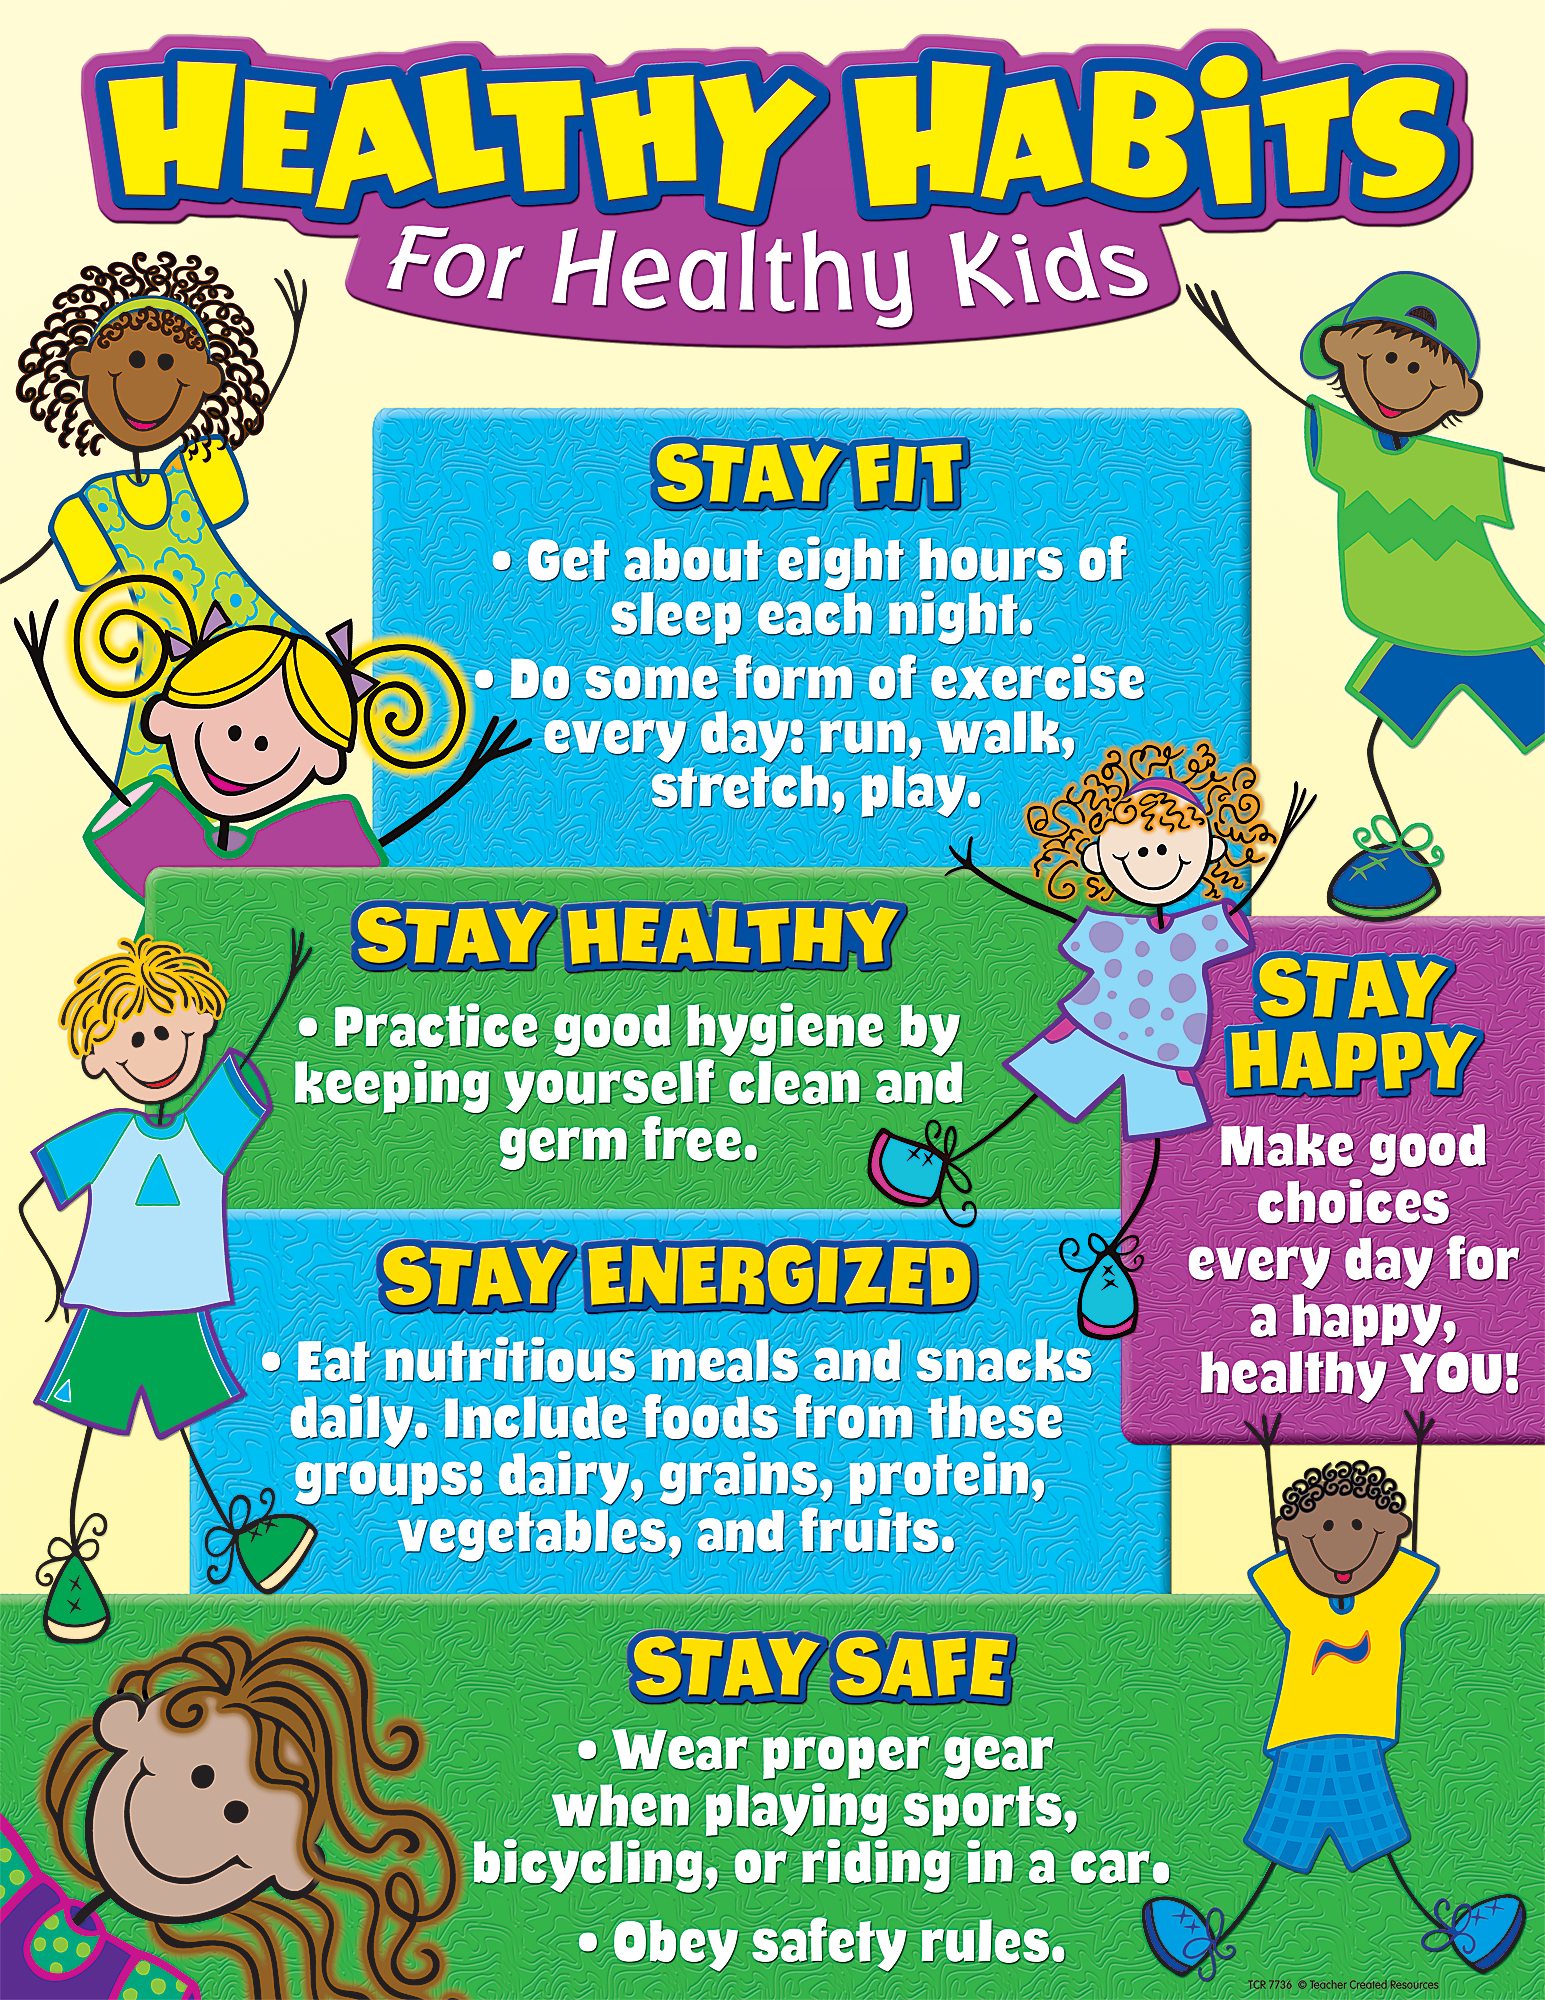 Healthy Habits for Healthy Kids Chart - TCR7736 | Teacher Created Resources - Good Habits For Kids PNG